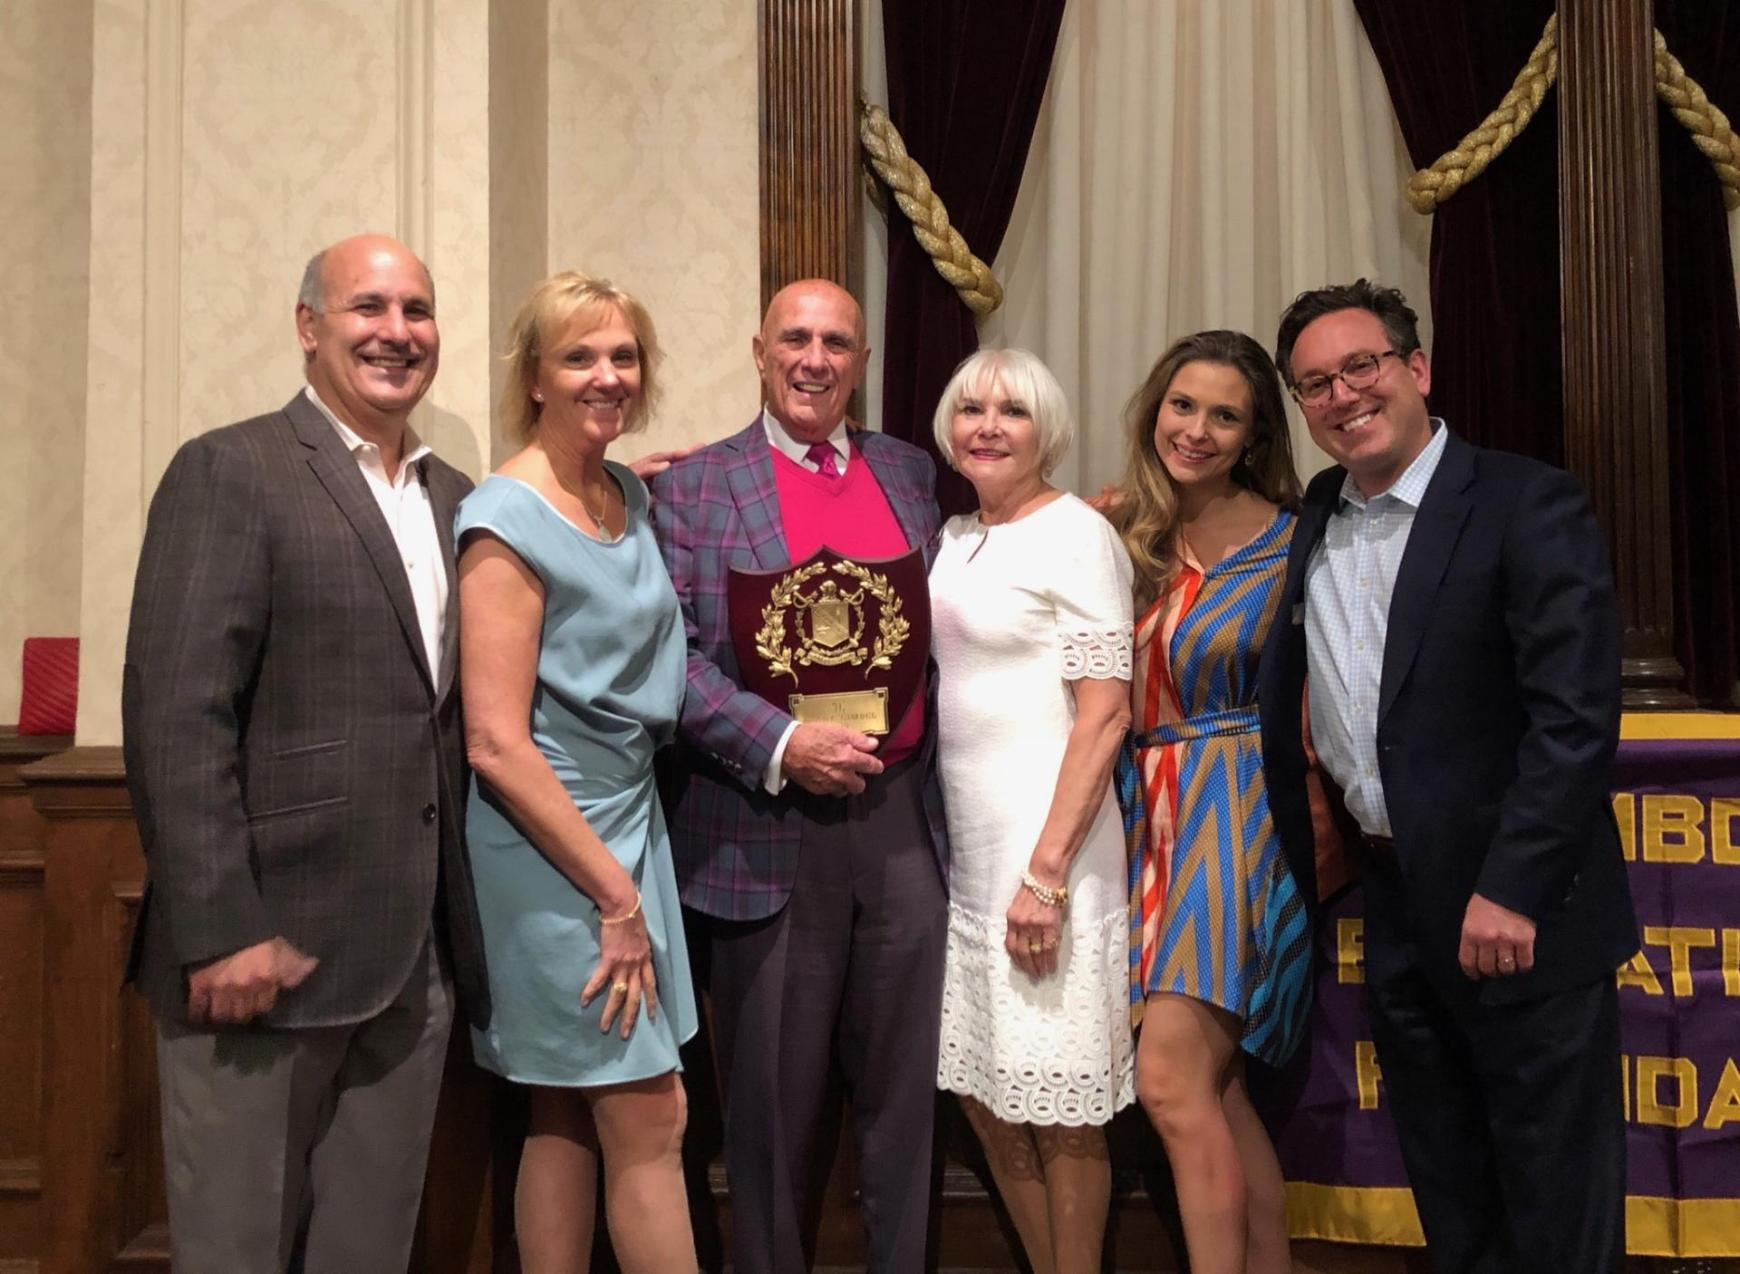 Attorney Frank Gimbel Awarded Lifetime Achievement Award by Pi Lambda Phi Fraternity